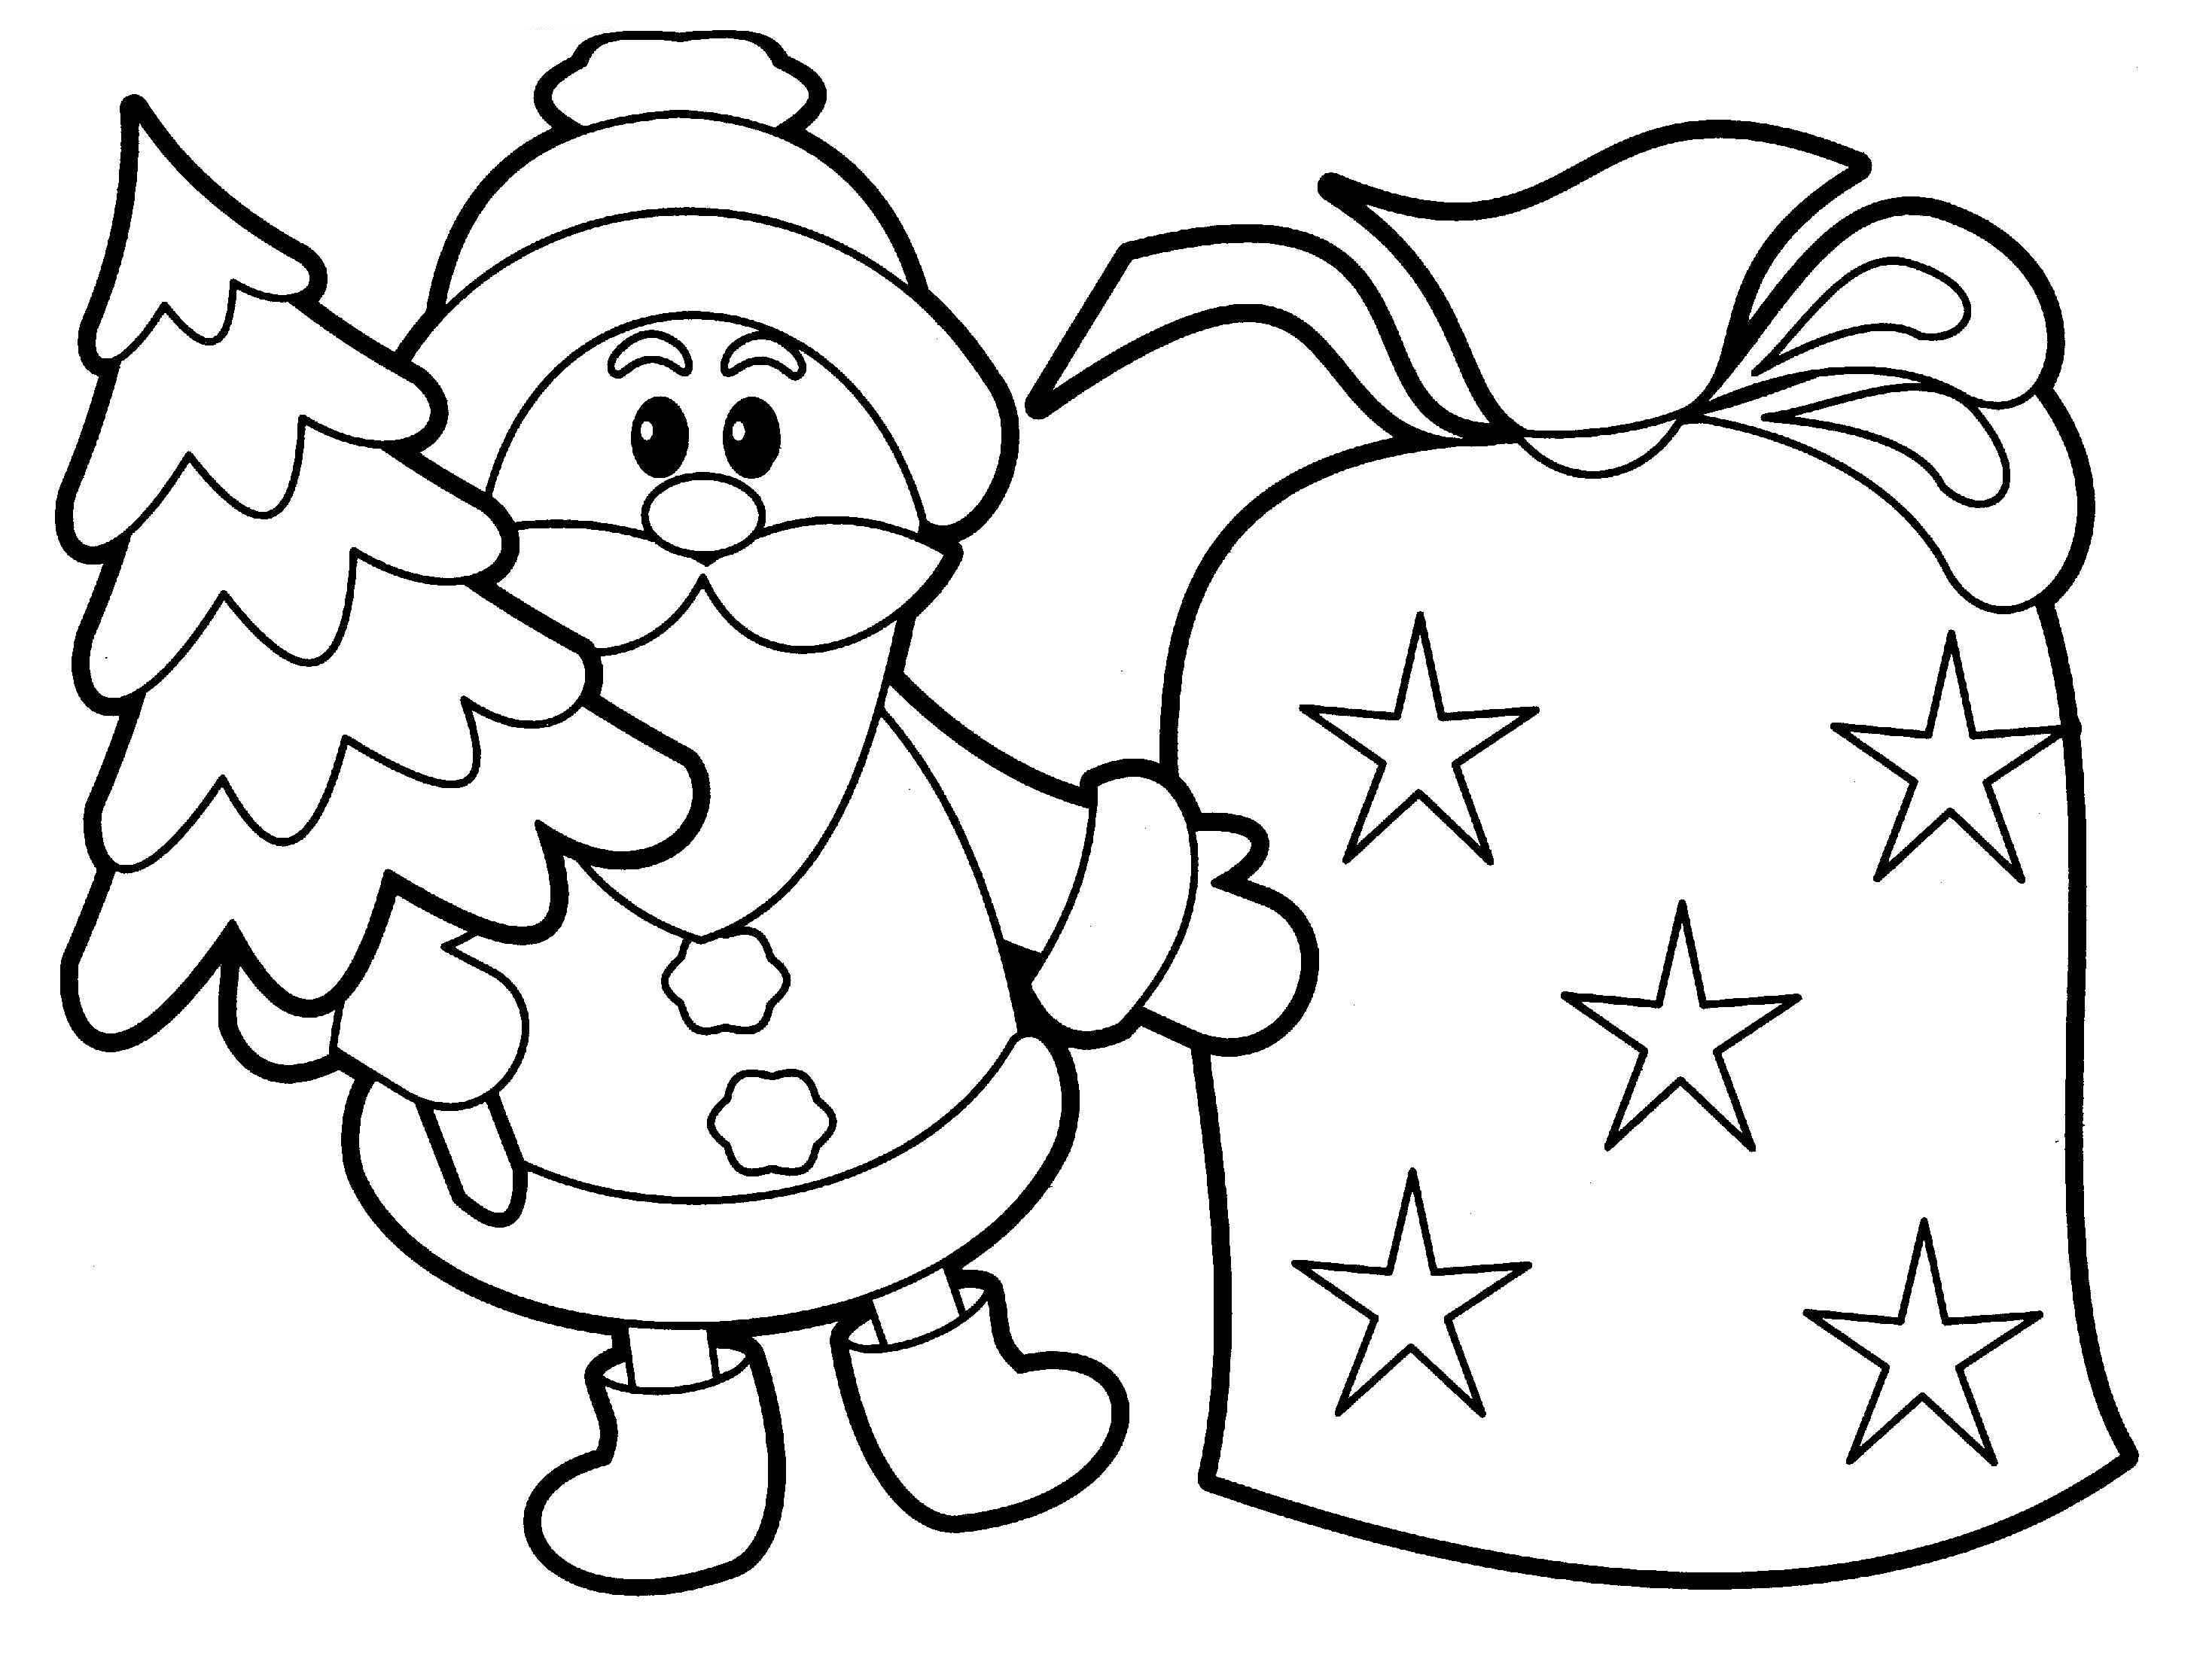 Online childrens coloring pages - Christmas Santa Coloring Picture Online Printable Coloring Pages Sheets For Kids Get The Latest Free Christmas Santa Coloring Picture Online Images